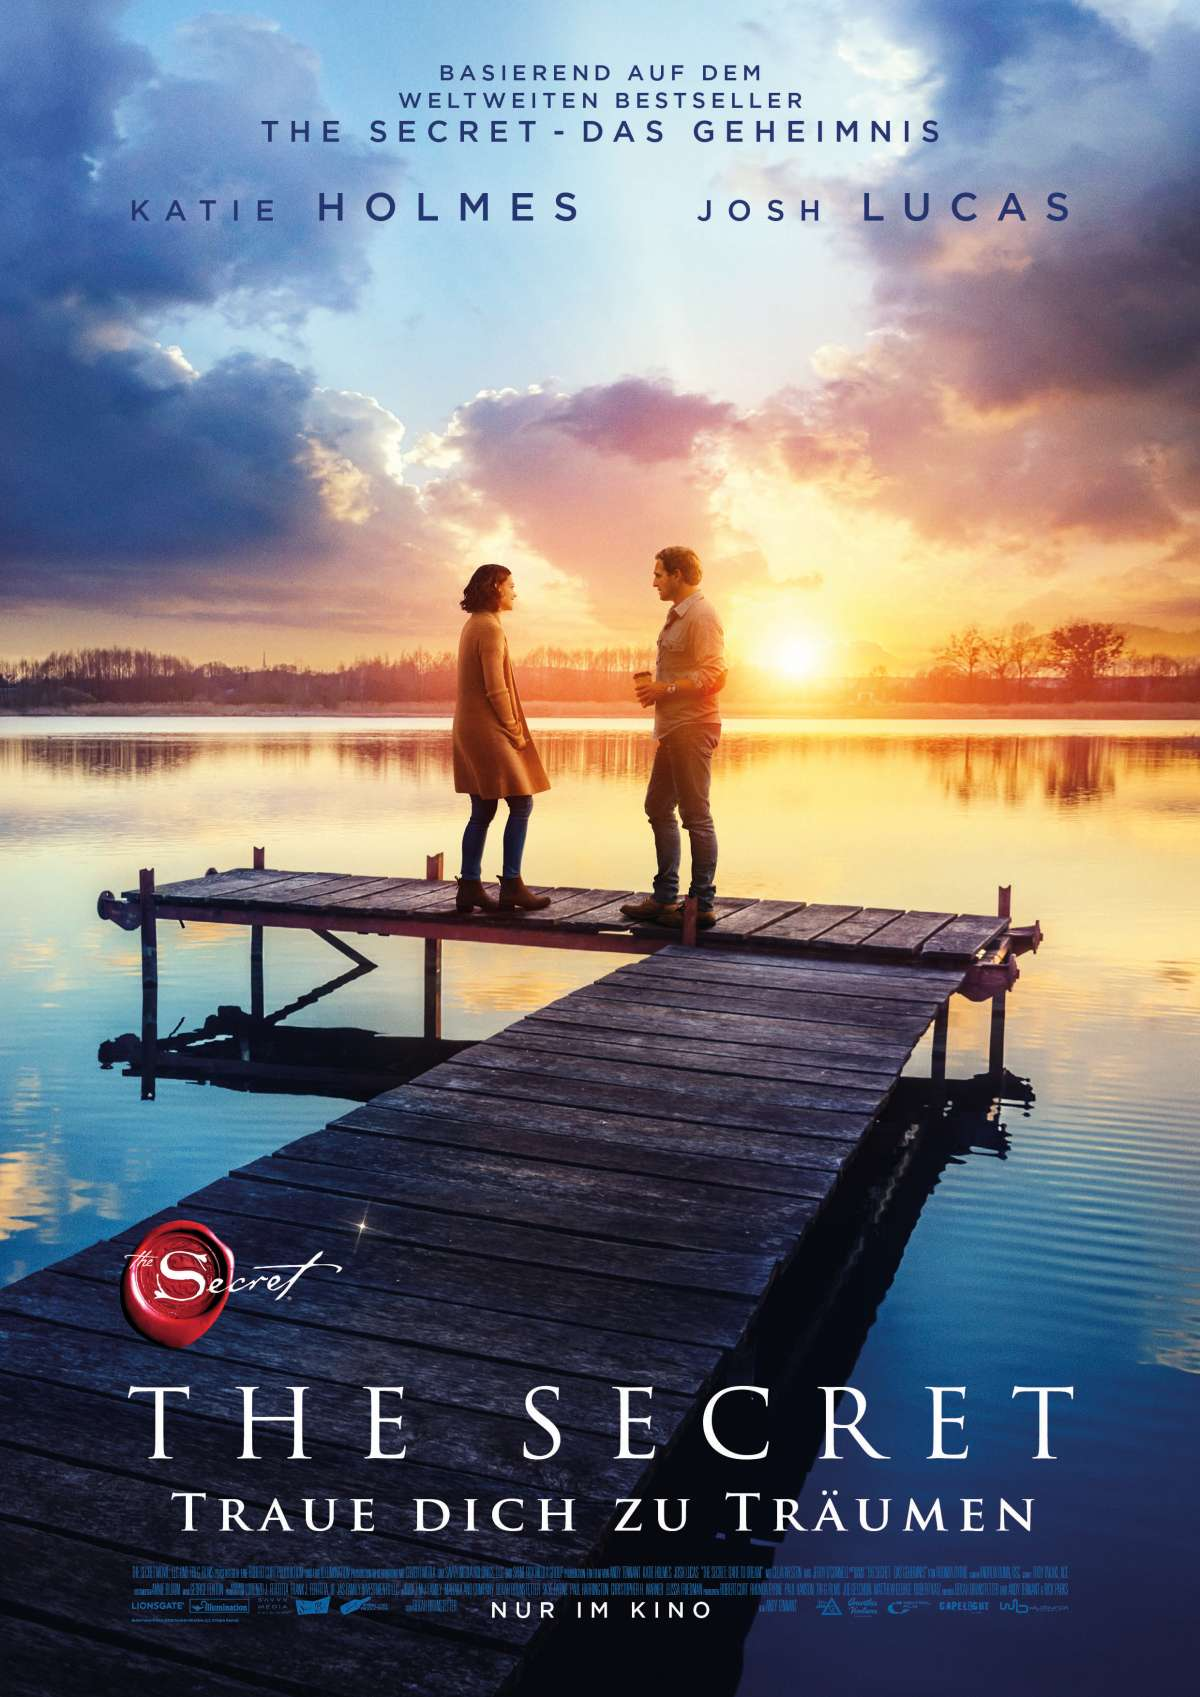 The Secret - Traue Dich zu träumen - Cineplex  - Baunatal